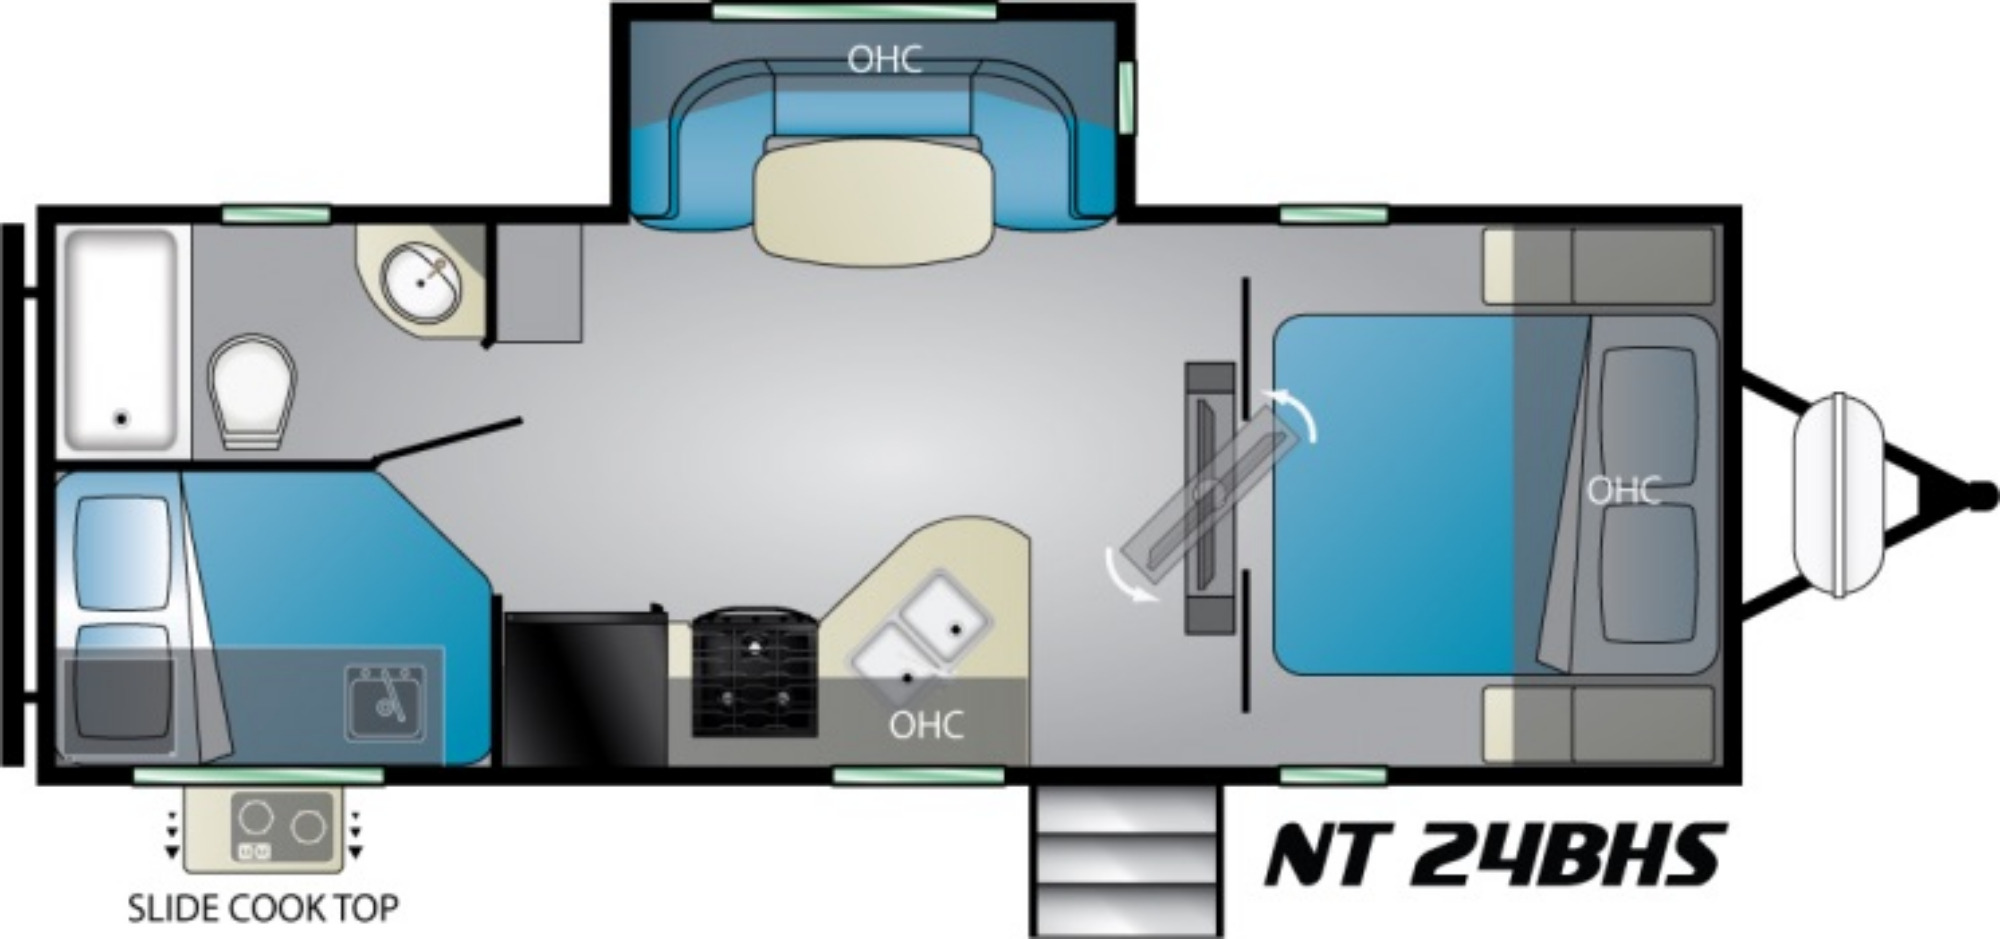 View Floor Plan for 2021 HEARTLAND NORTH TRAIL 24BHS